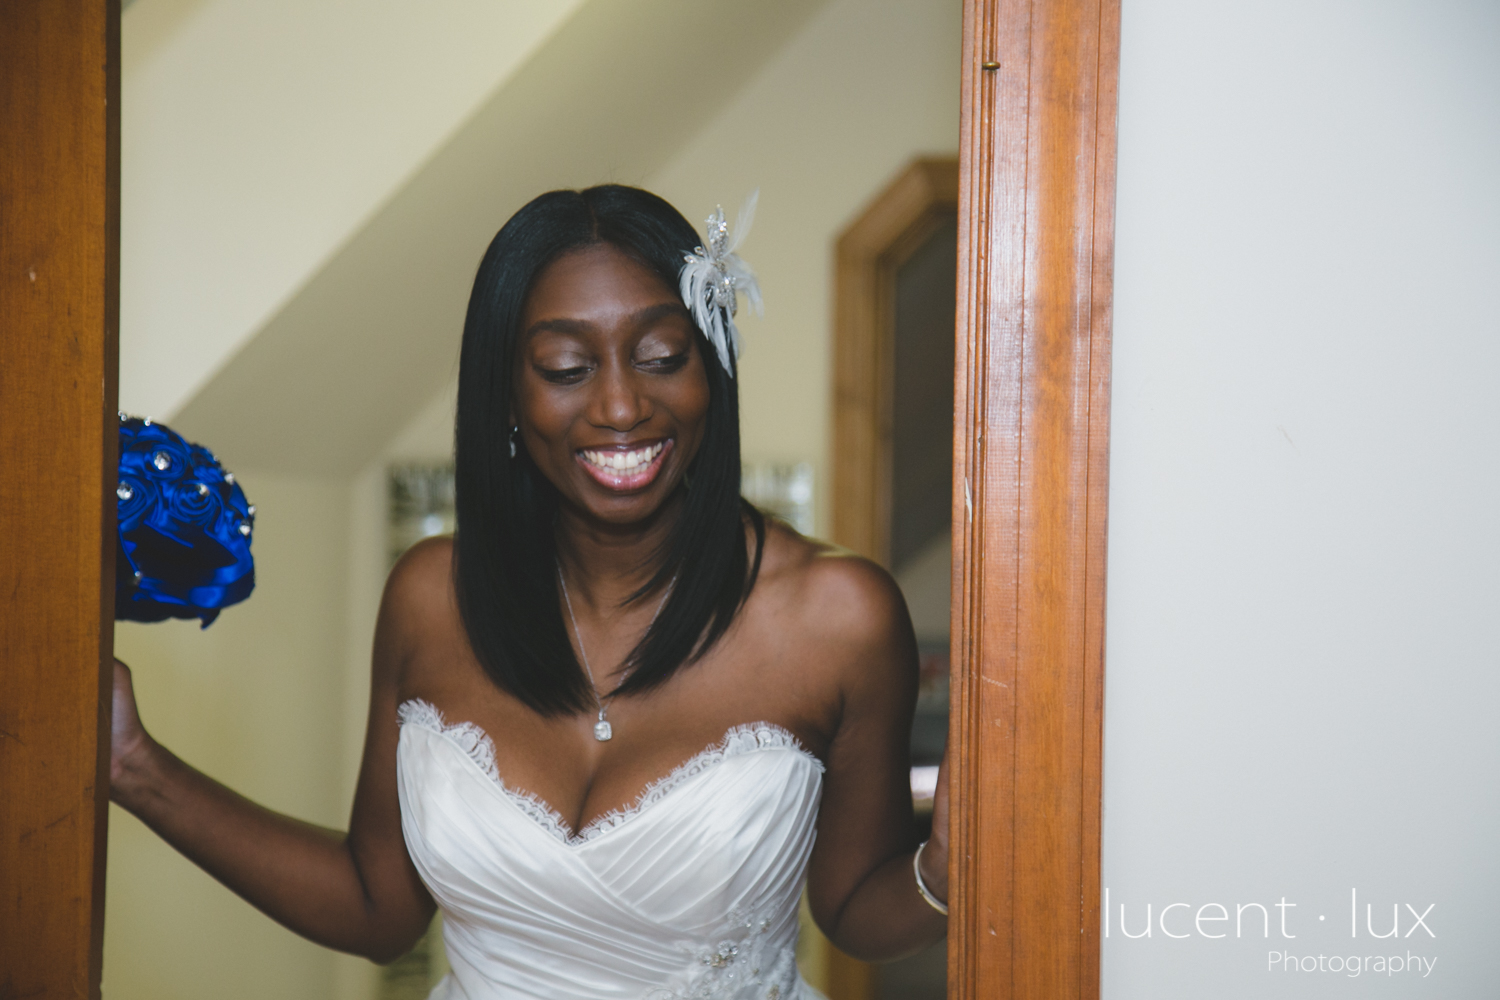 Harford_County_Courthouse_Bel_Air_Maryland_Wedding_Photographer_Maryland_Wedding_Photography-110.jpg